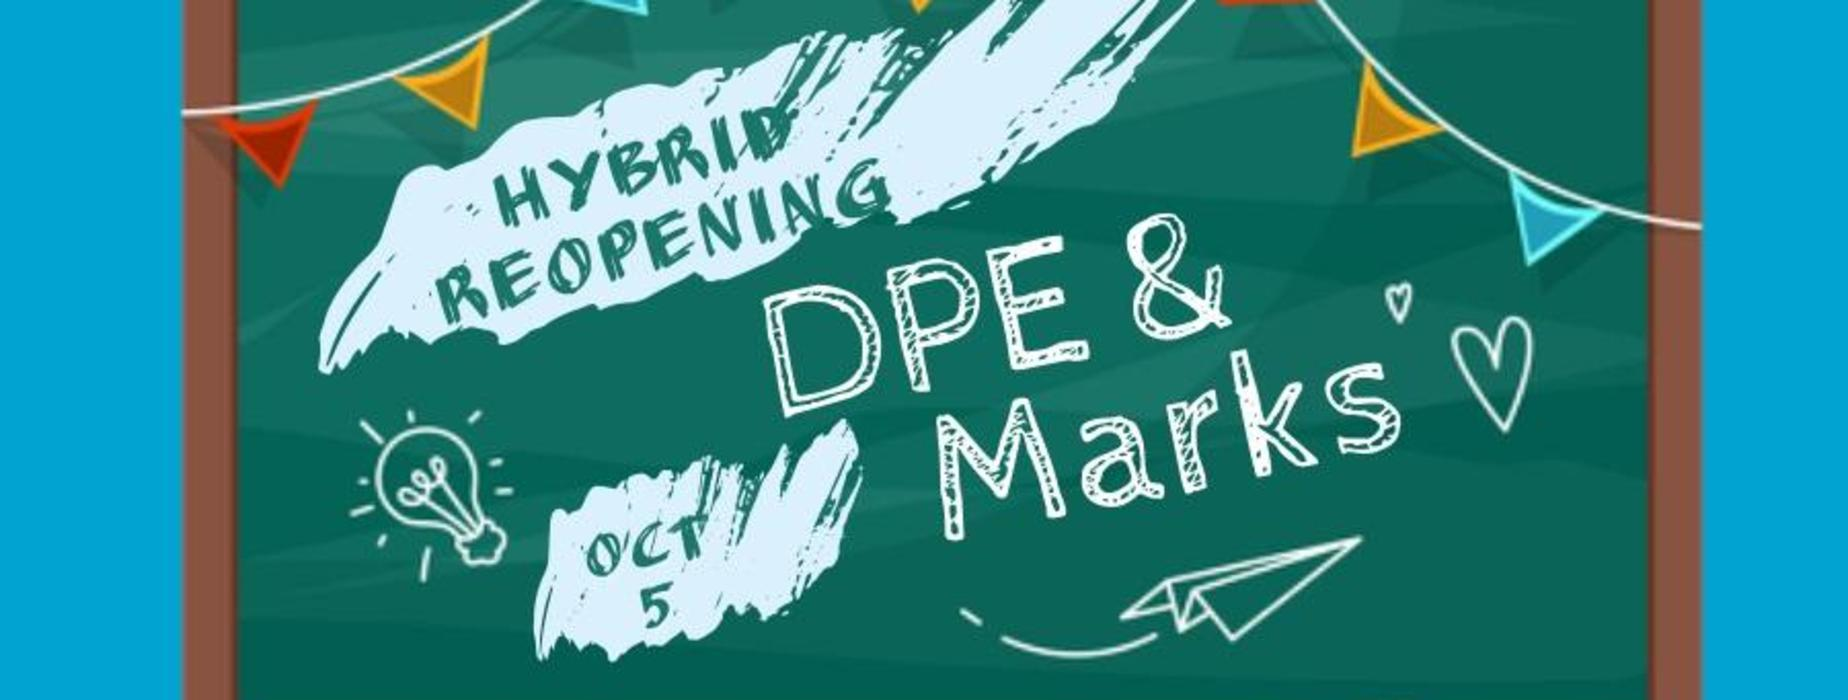 Chalkboard with message about elementary hybrid opening on October 5.